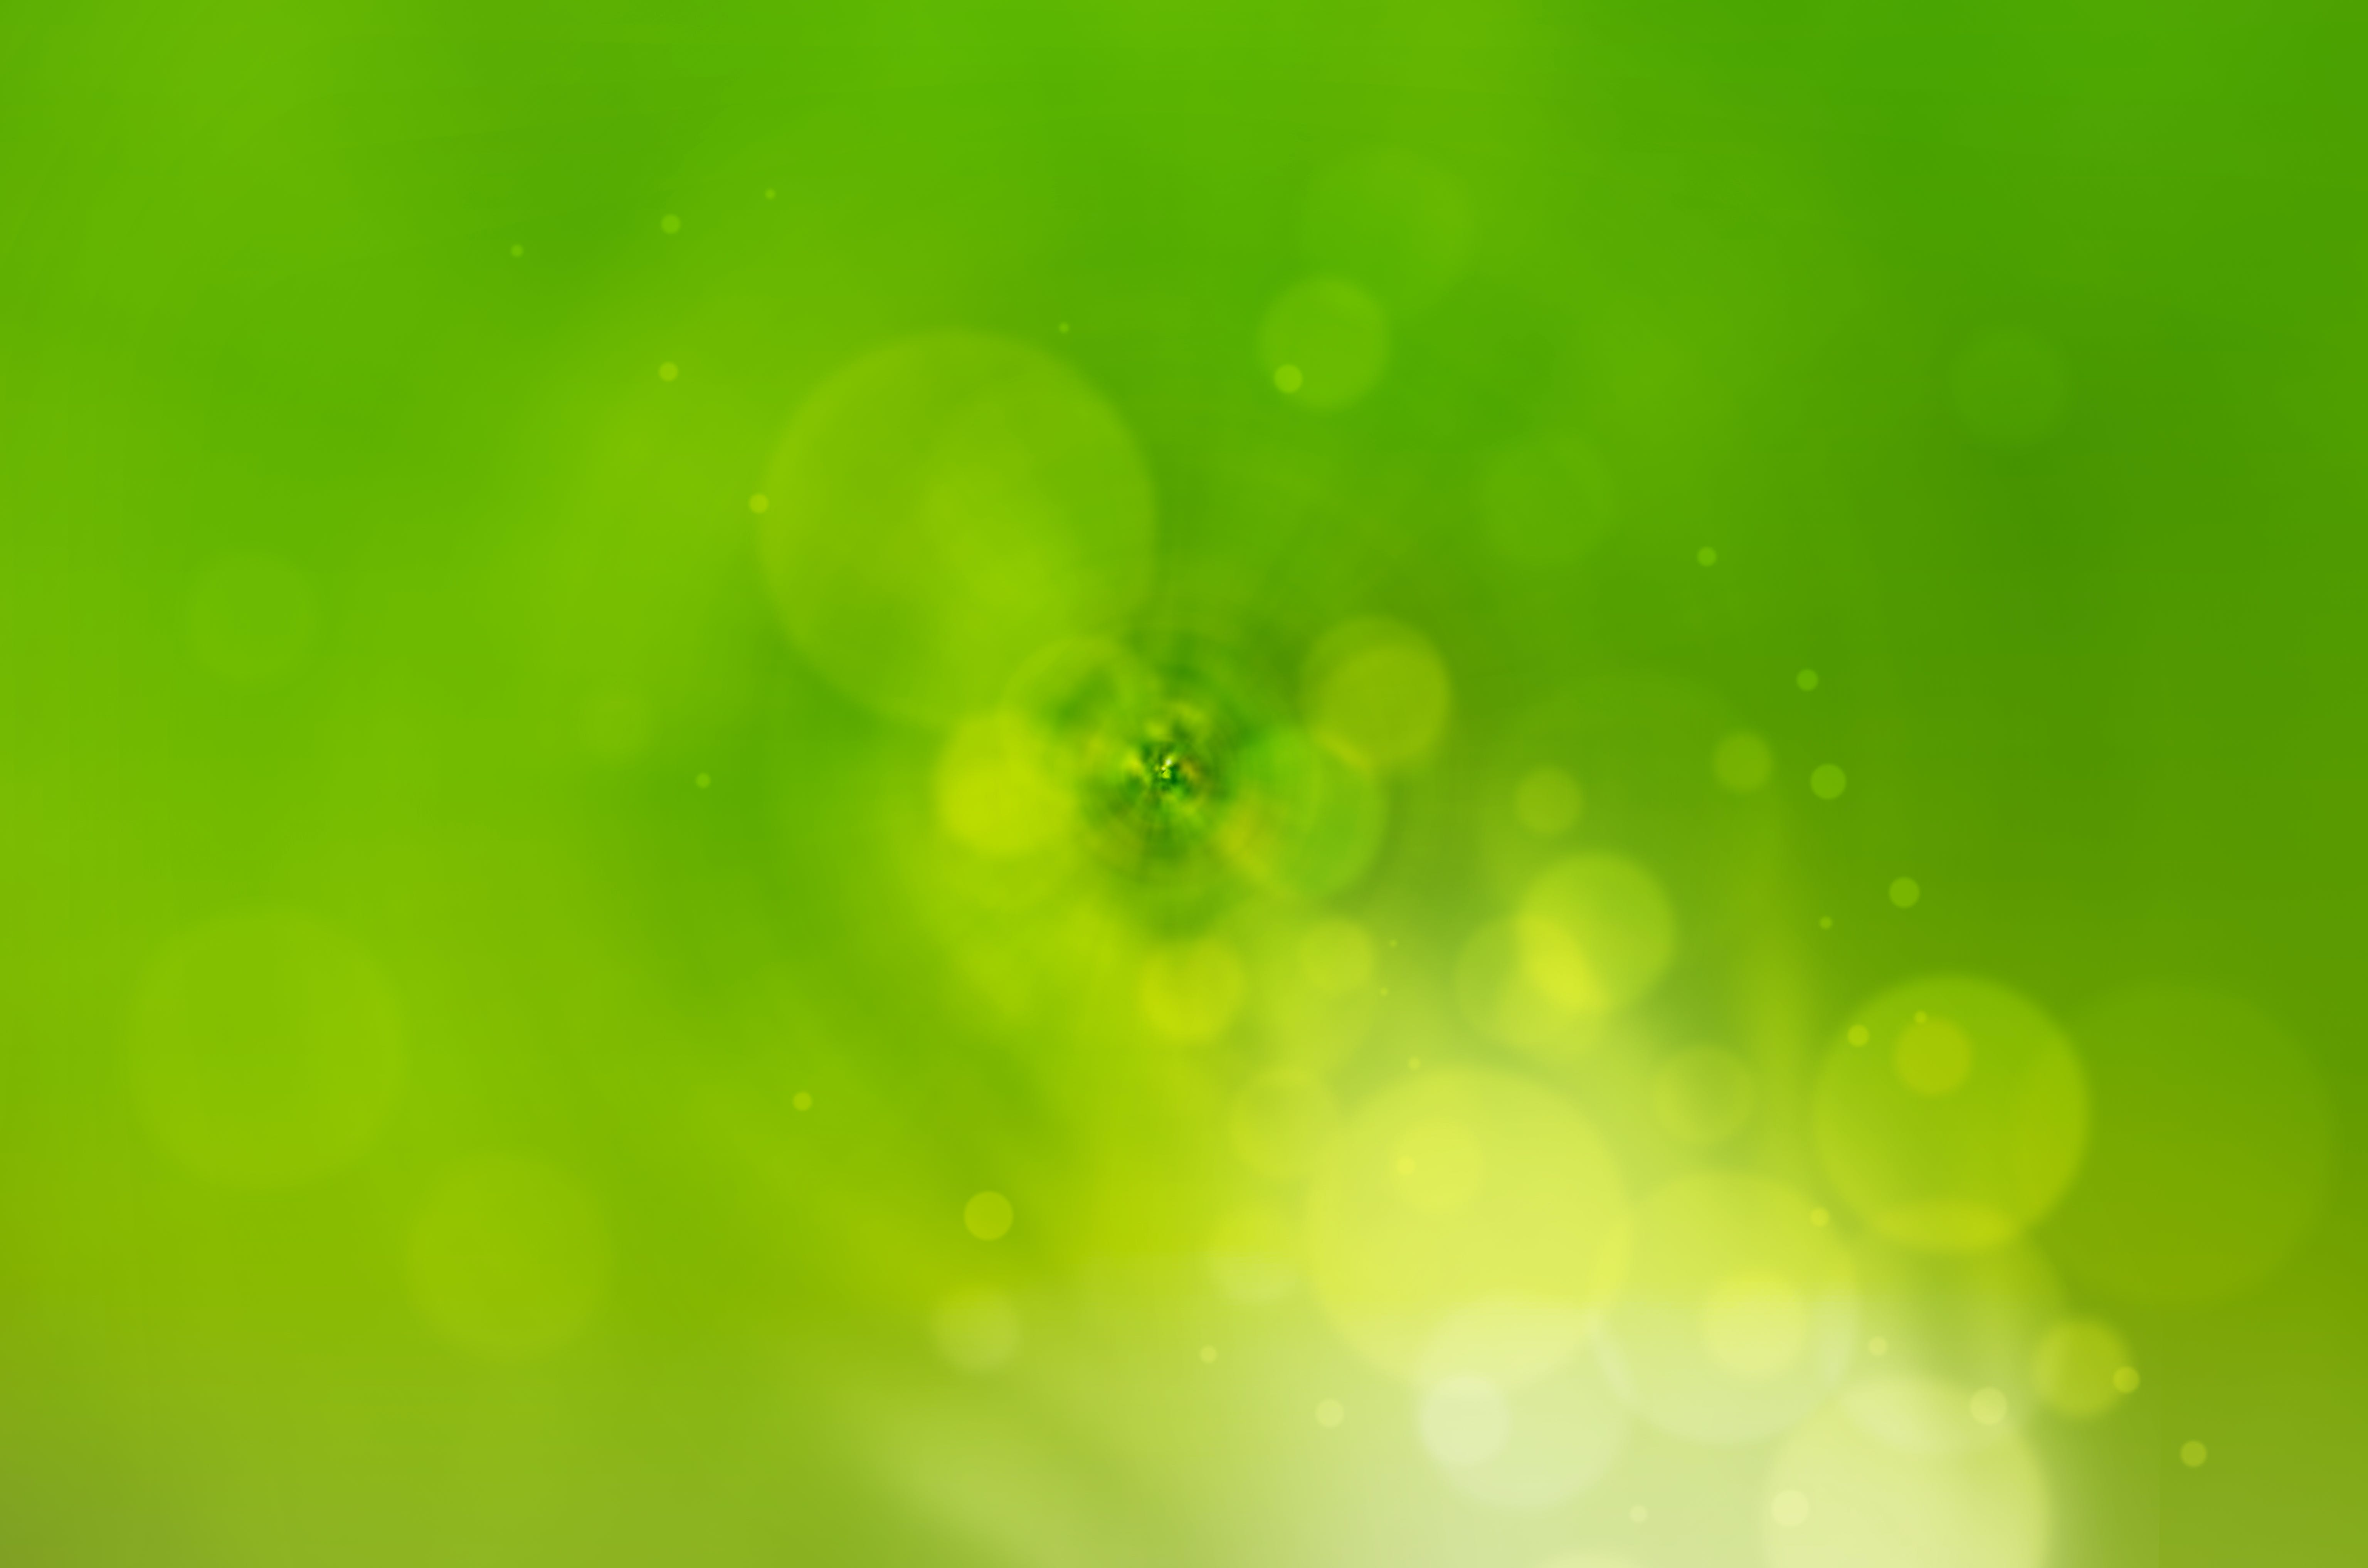 Free stock photo of abstract, background, bright, bubble